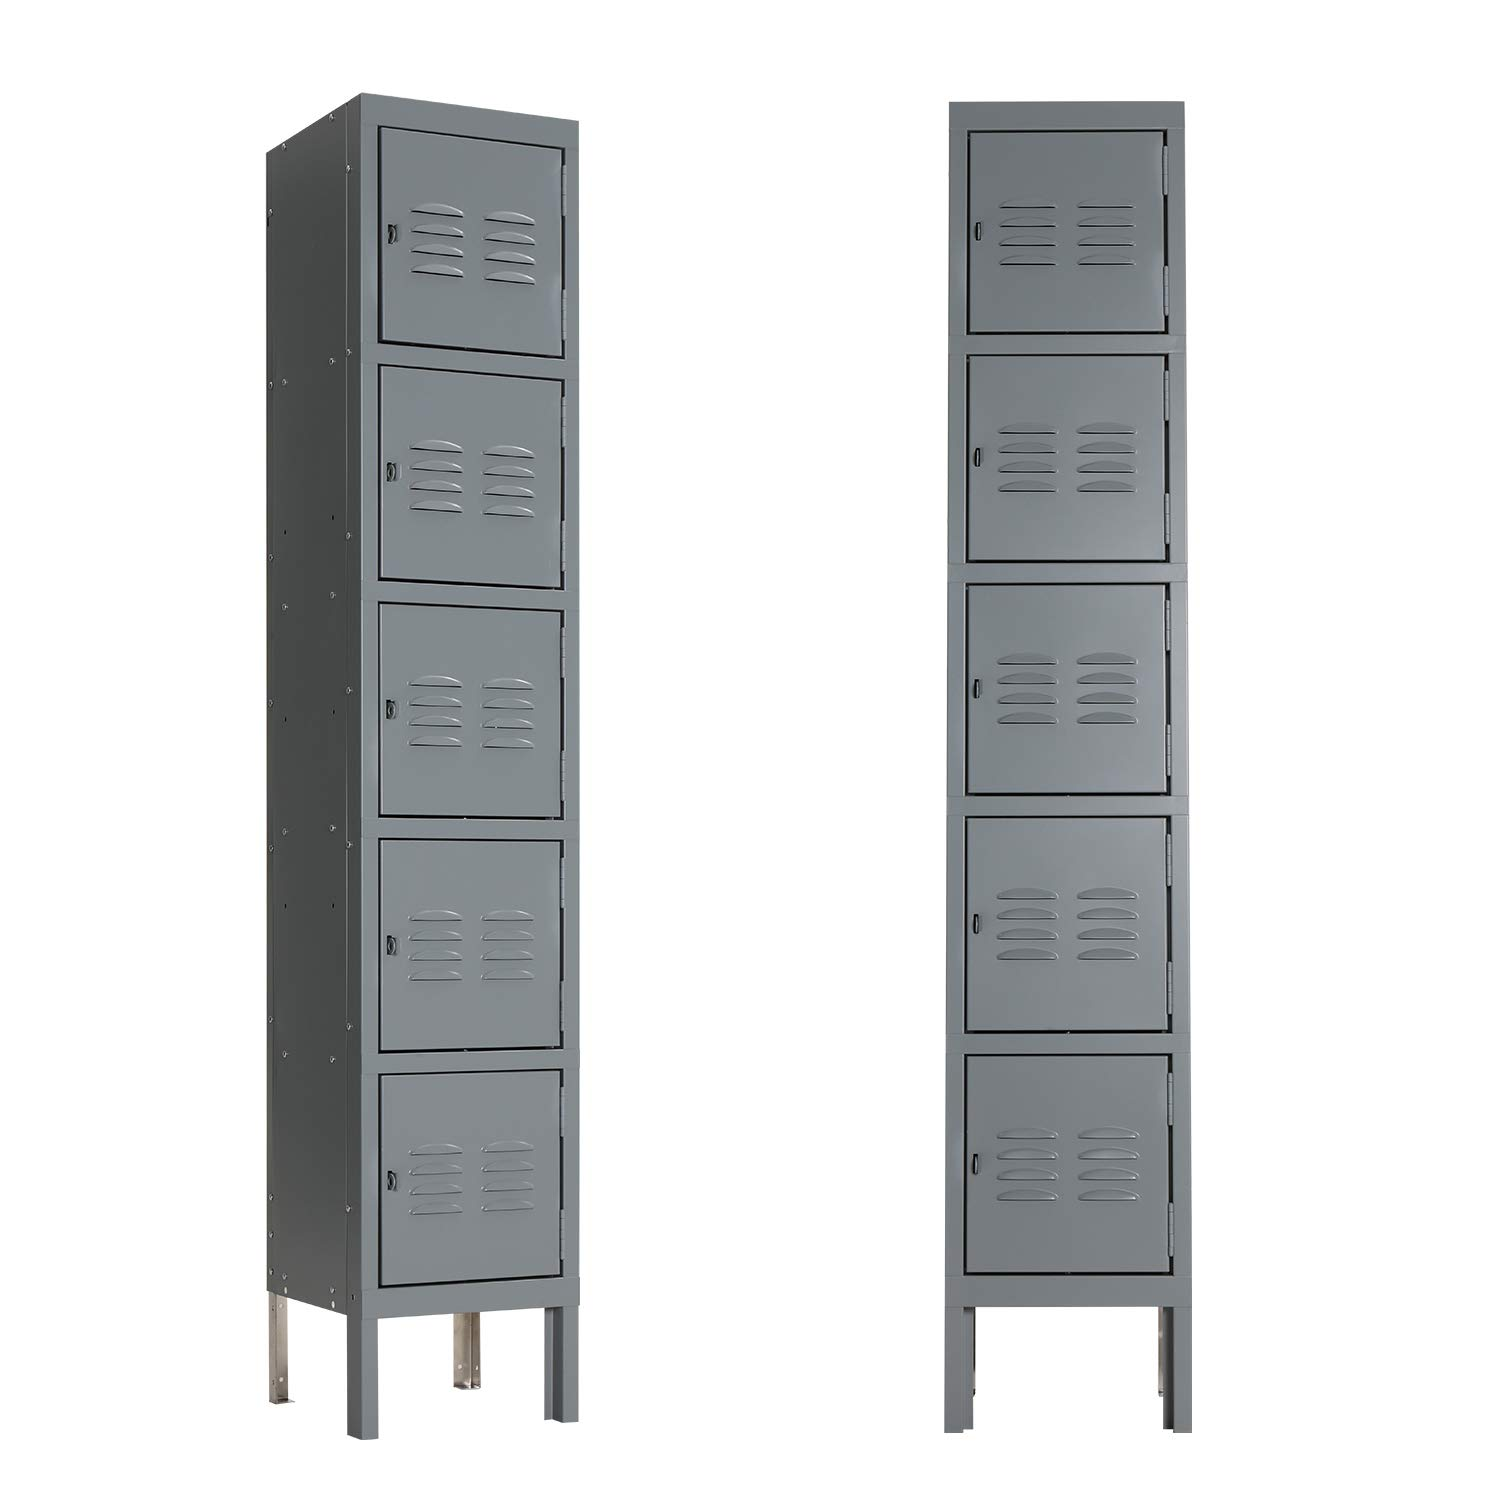 INVIE Locker Storage Personal Cabinet